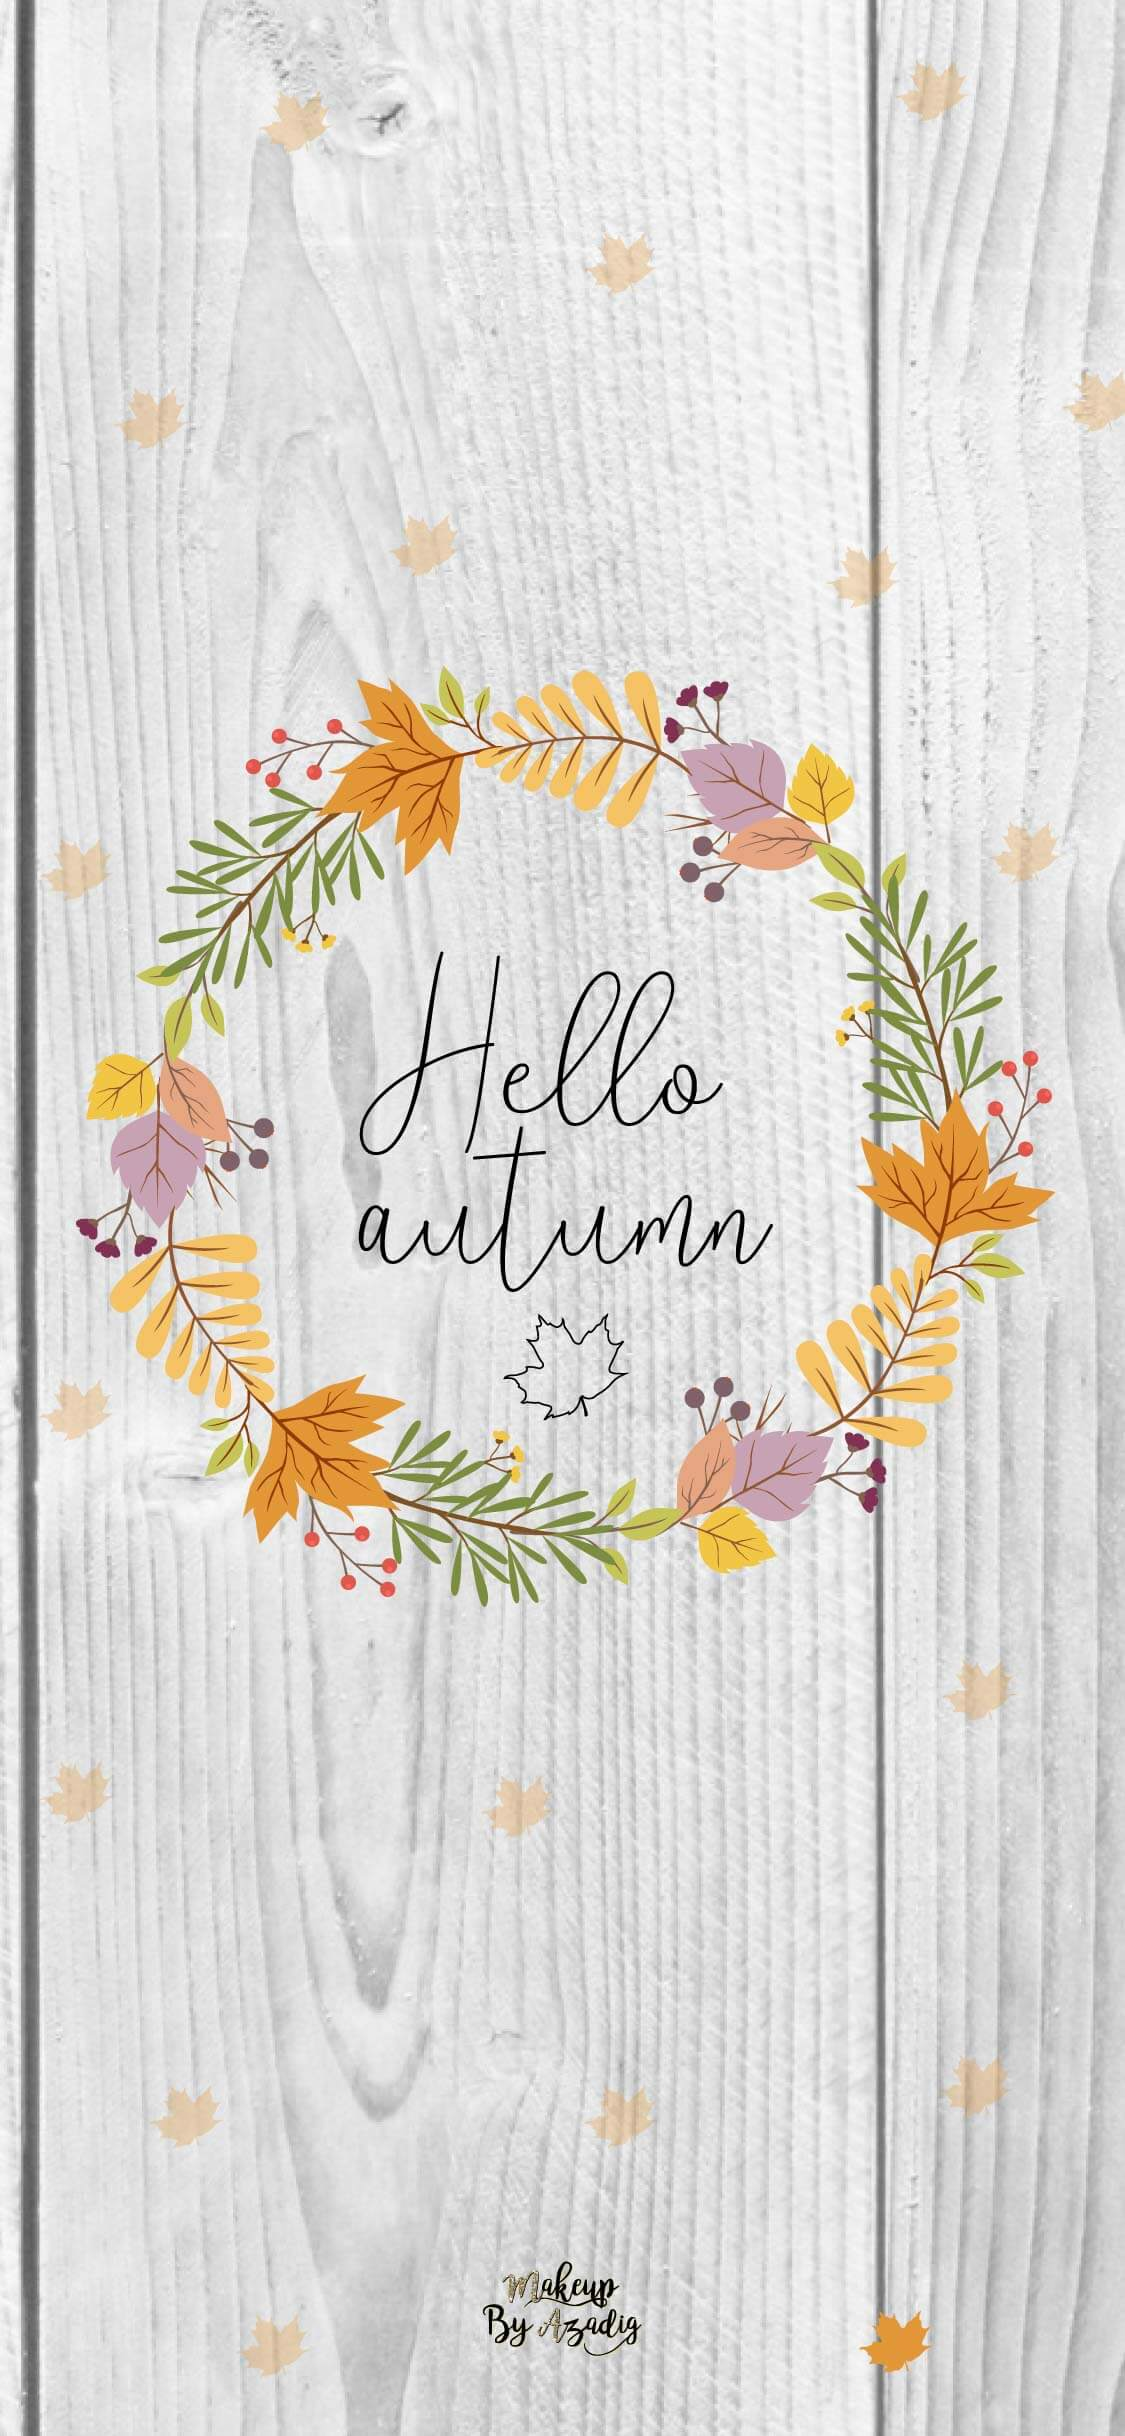 fond-decran-wallpaper-hello-couronne-automne-iphone-X-makeupbyazadig-tendance